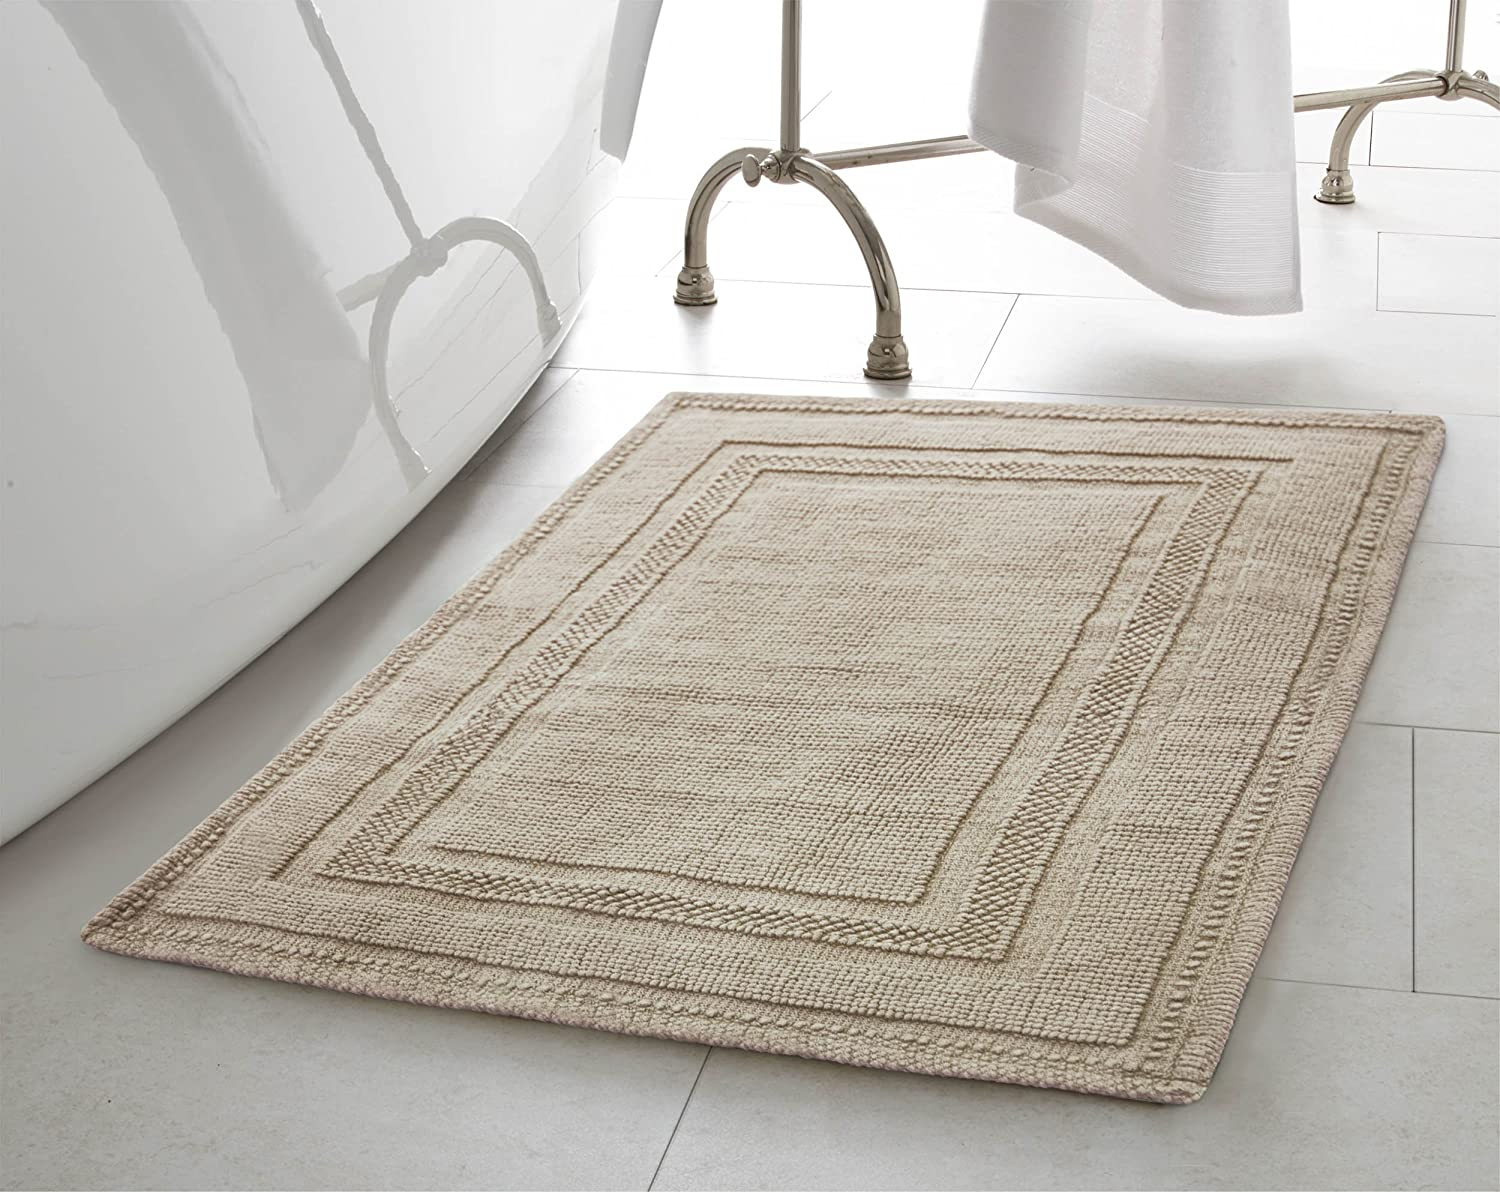 Jean Pierre New York Cotton StoneWash Racetrack 21x34 in. Bath Rug, Taupe Gray